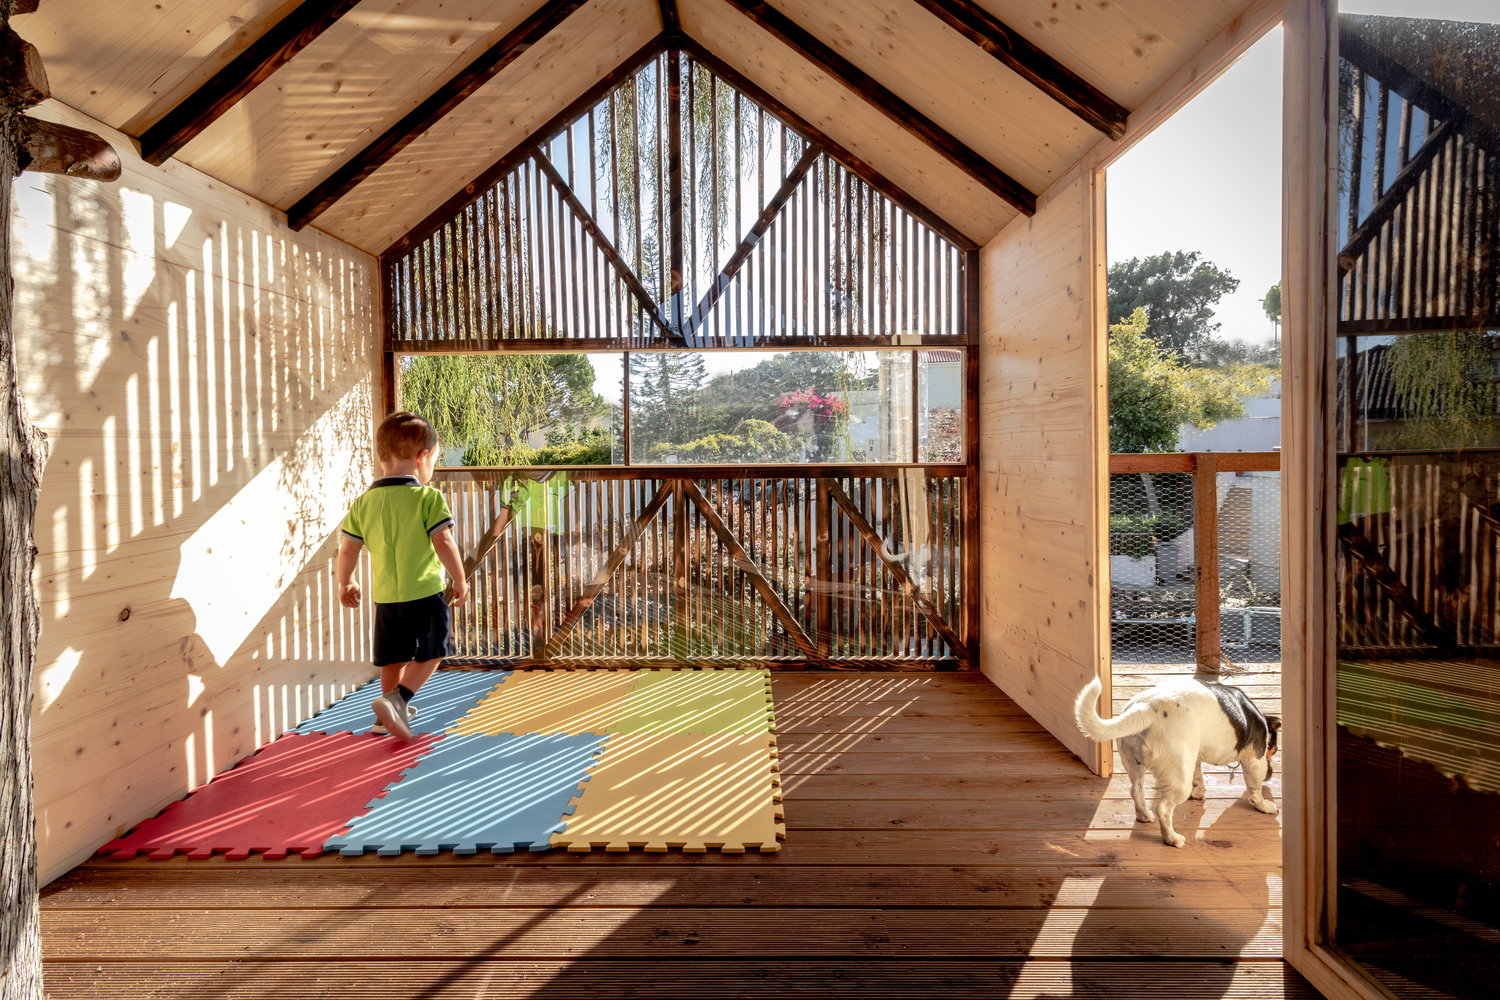 Top-Notch Craftsmanship Shines in This Treehouse for Kids